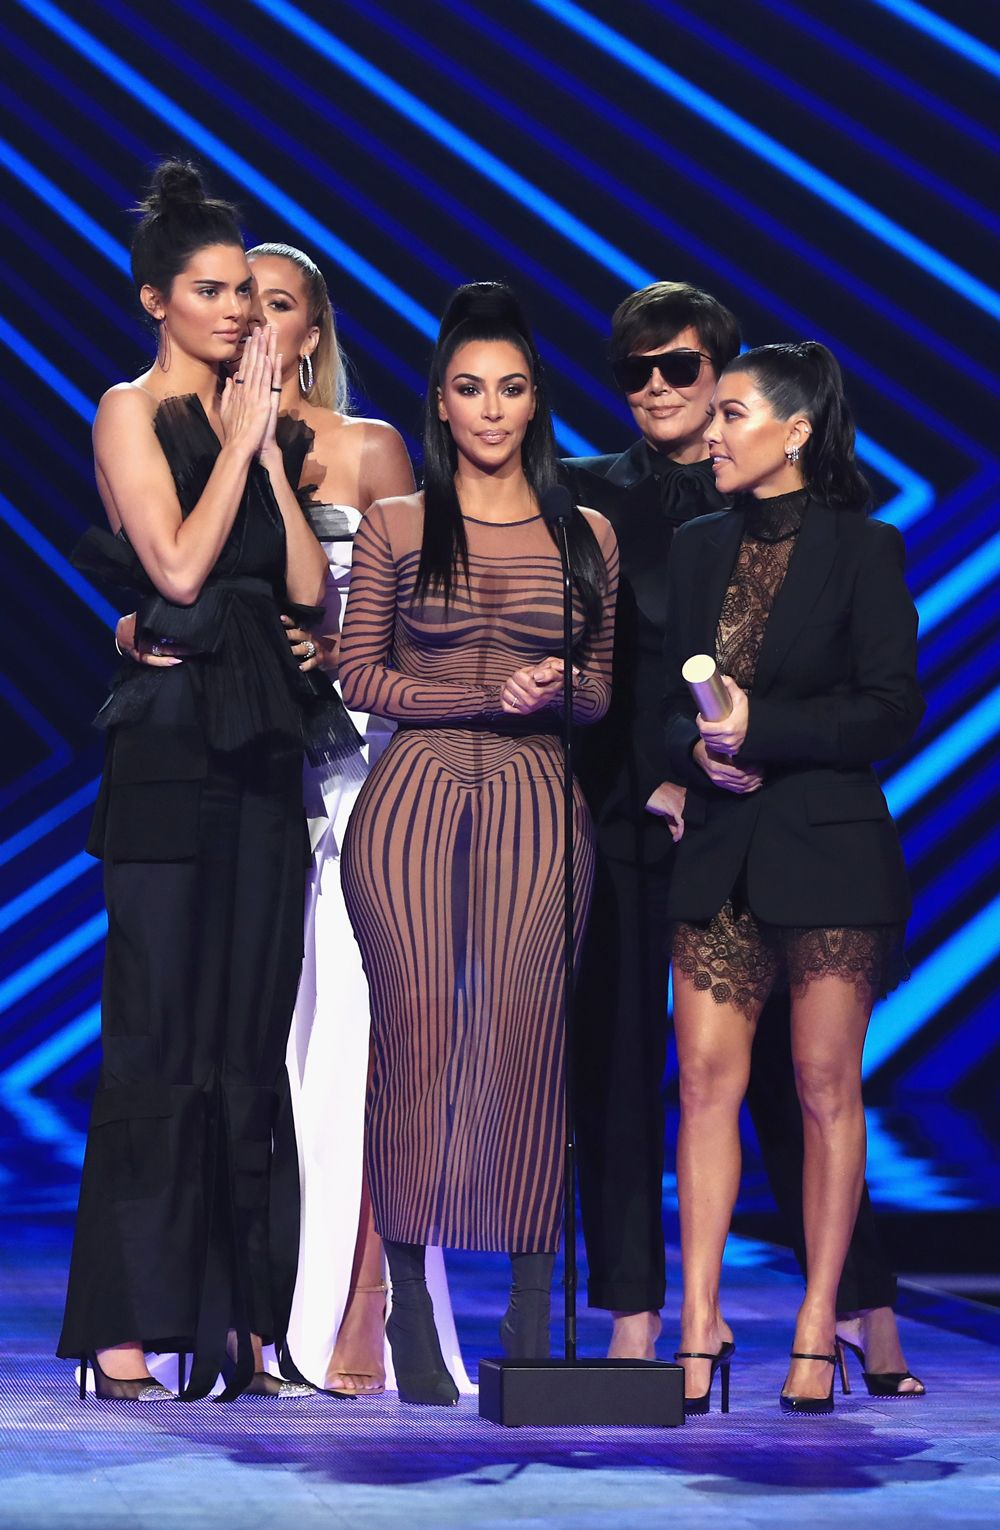 The Kardashians Are Shutting Down Their Apps In 2019